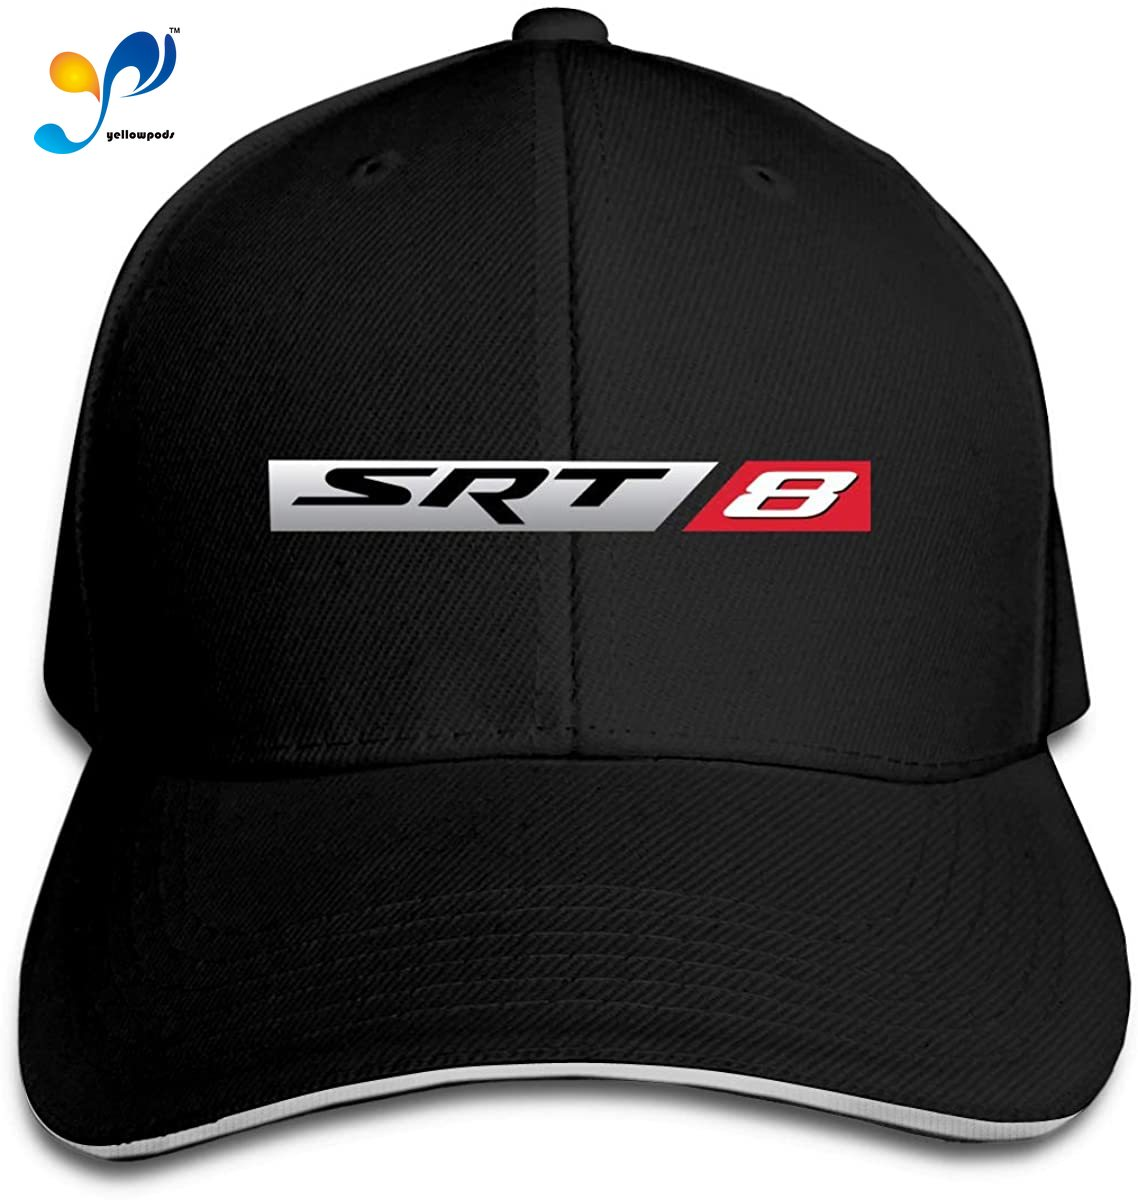 Sandwich-Hat Baseball-Cap Golf-Trucker Hip-Hop Adjustable Black Muscle-Car-Srt8 Peaked